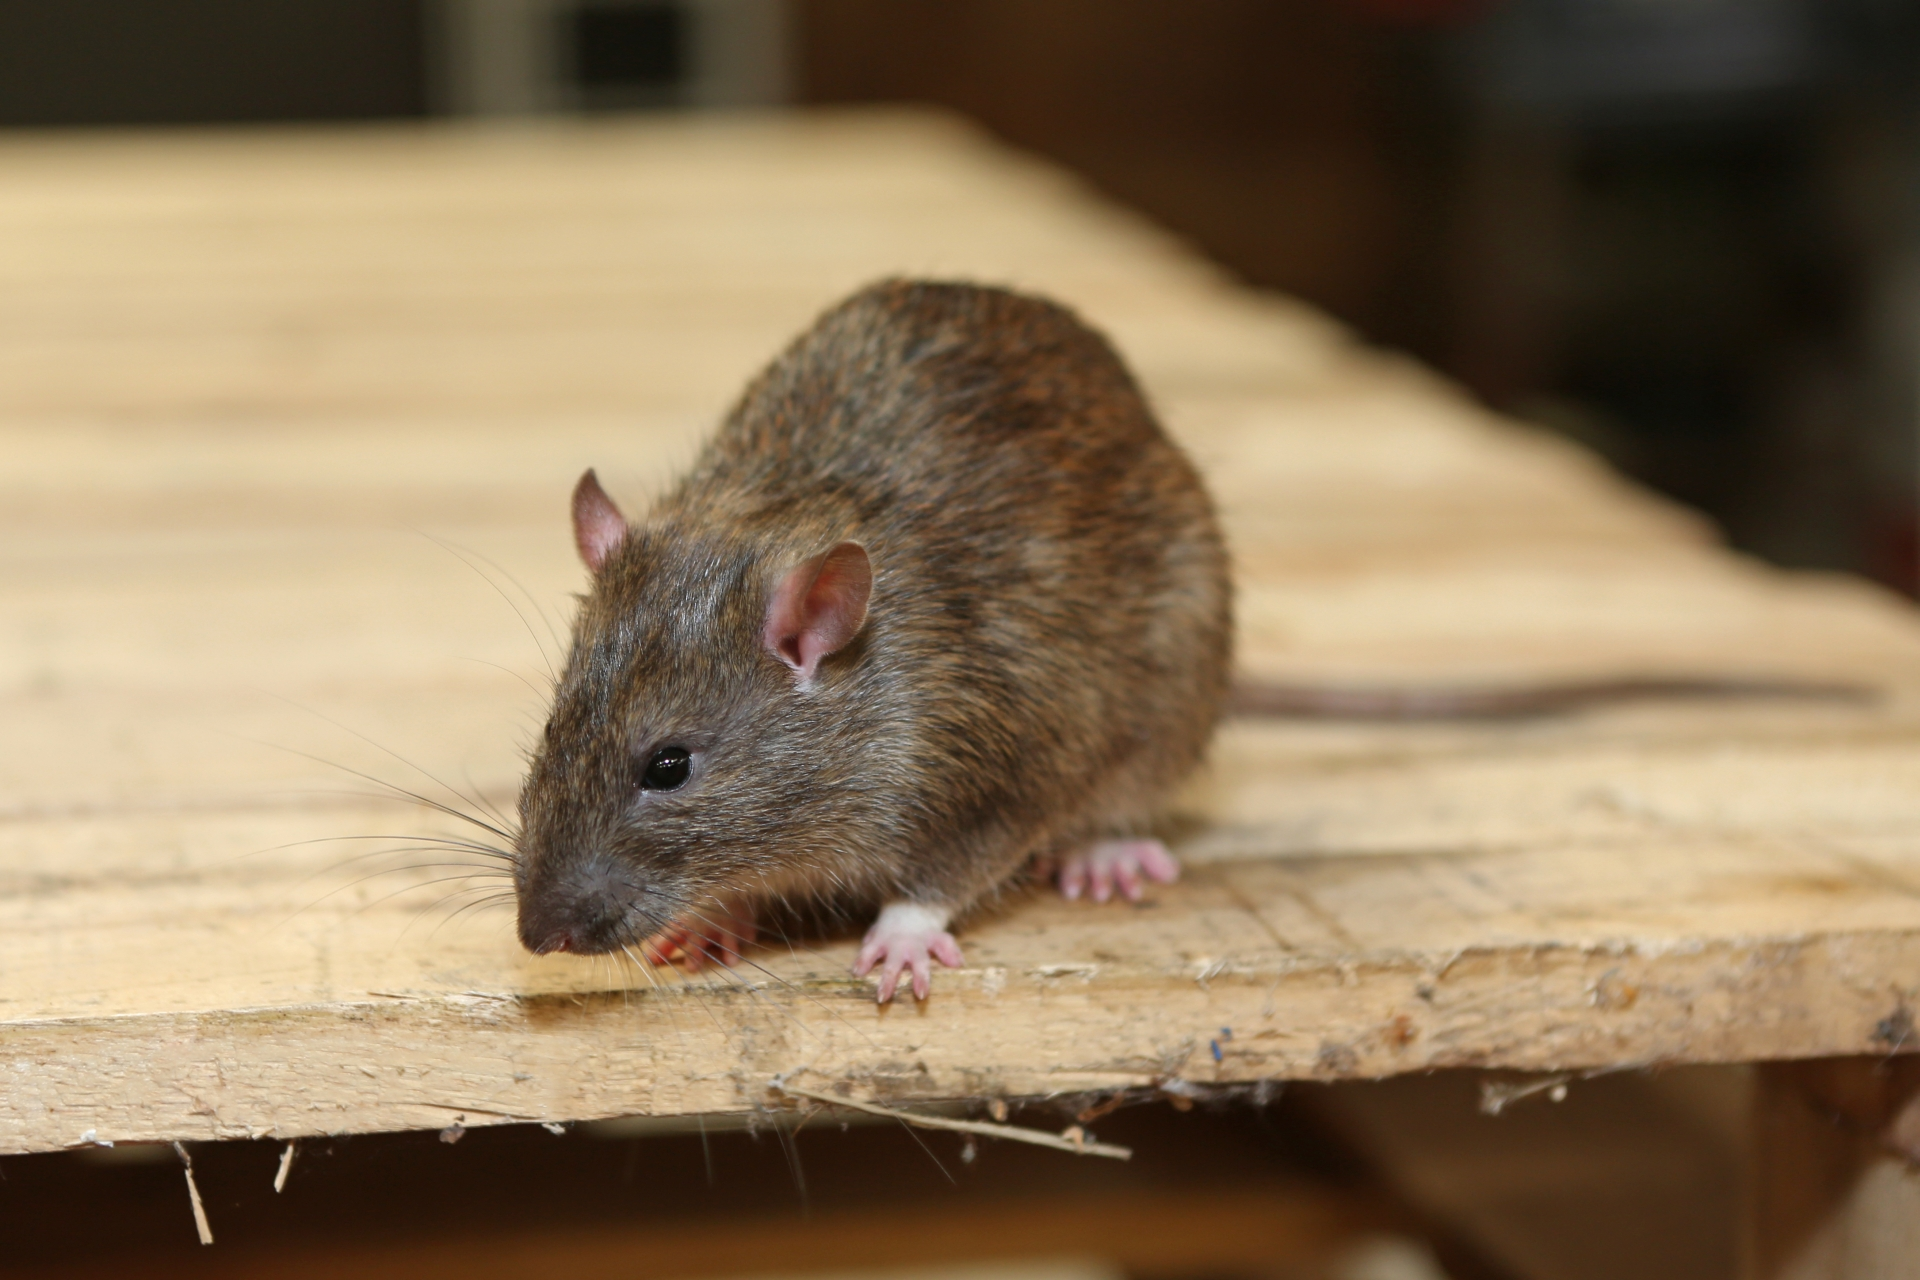 Rat Infestation, Pest Control in Deptford, SE8. Call Now 020 8166 9746